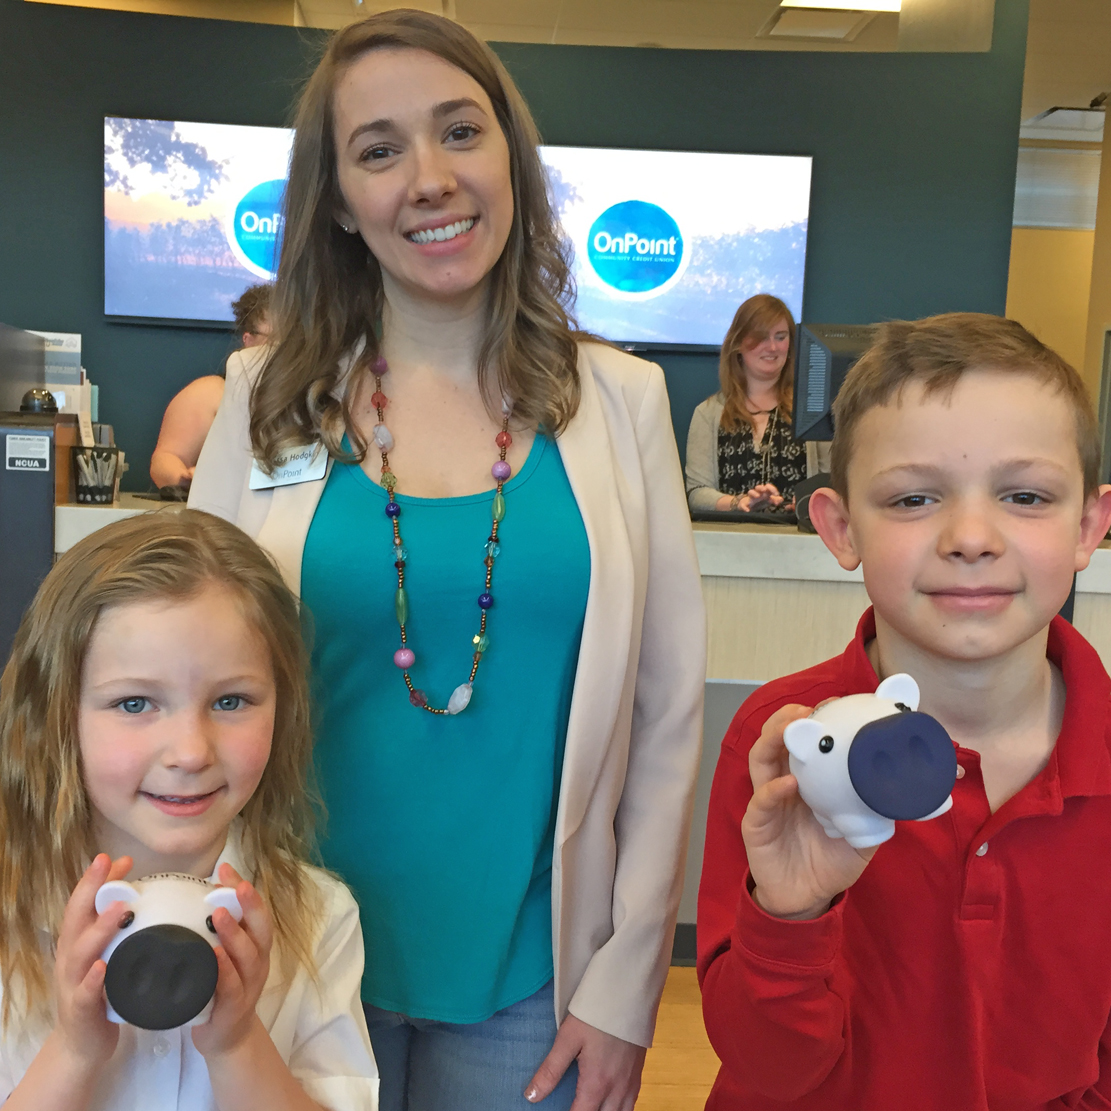 Mother with her two children at an OnPoint branch - each child has an OnPoint Piggy Bank